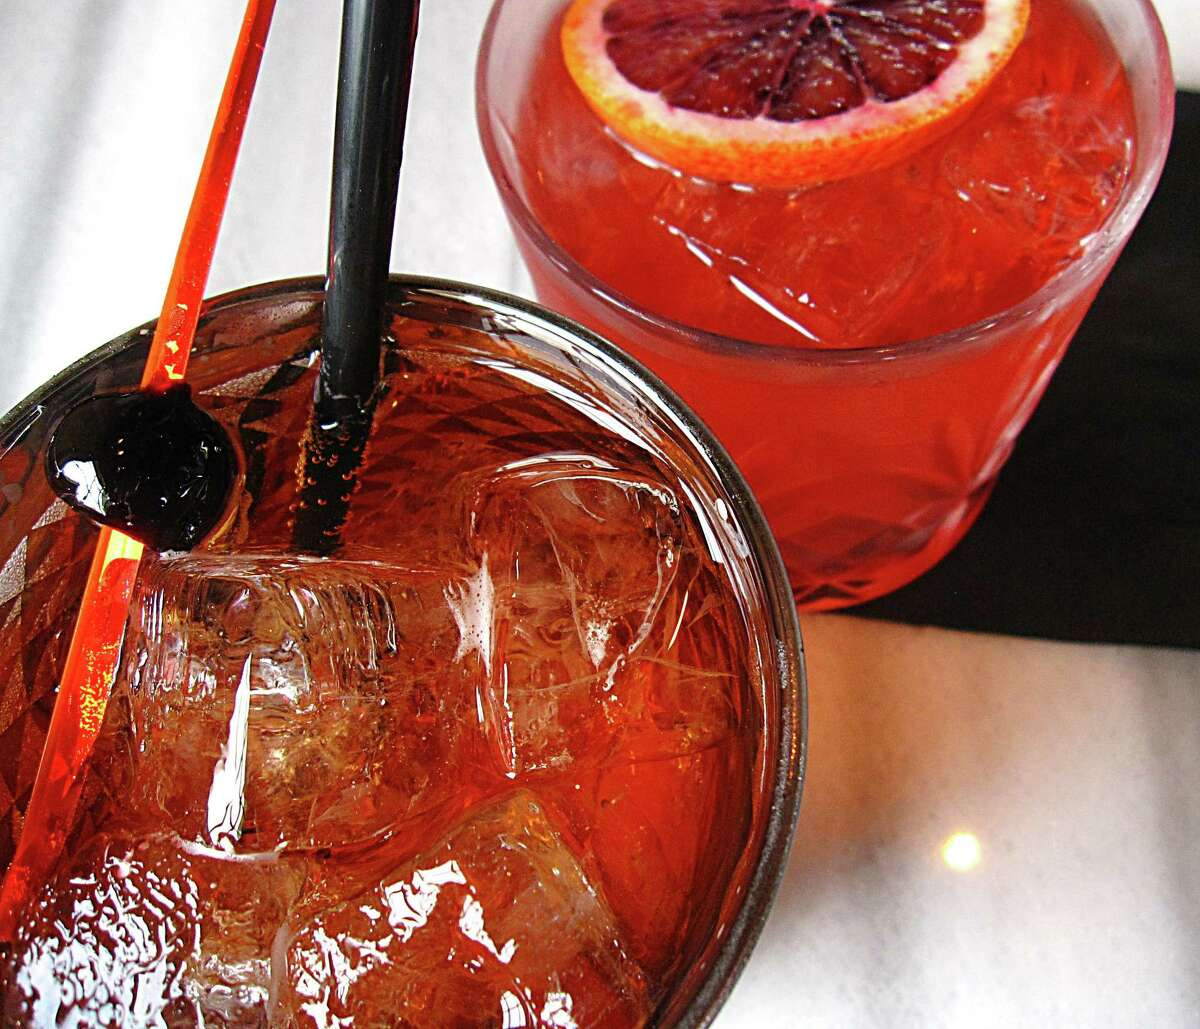 A Battalion Spritz cocktail with prosecco, housemade soda and Aperol (foreground) and a cocktail called the Arsonist, with tequila, Campari, amaretto and blood orange soda from Battalion.